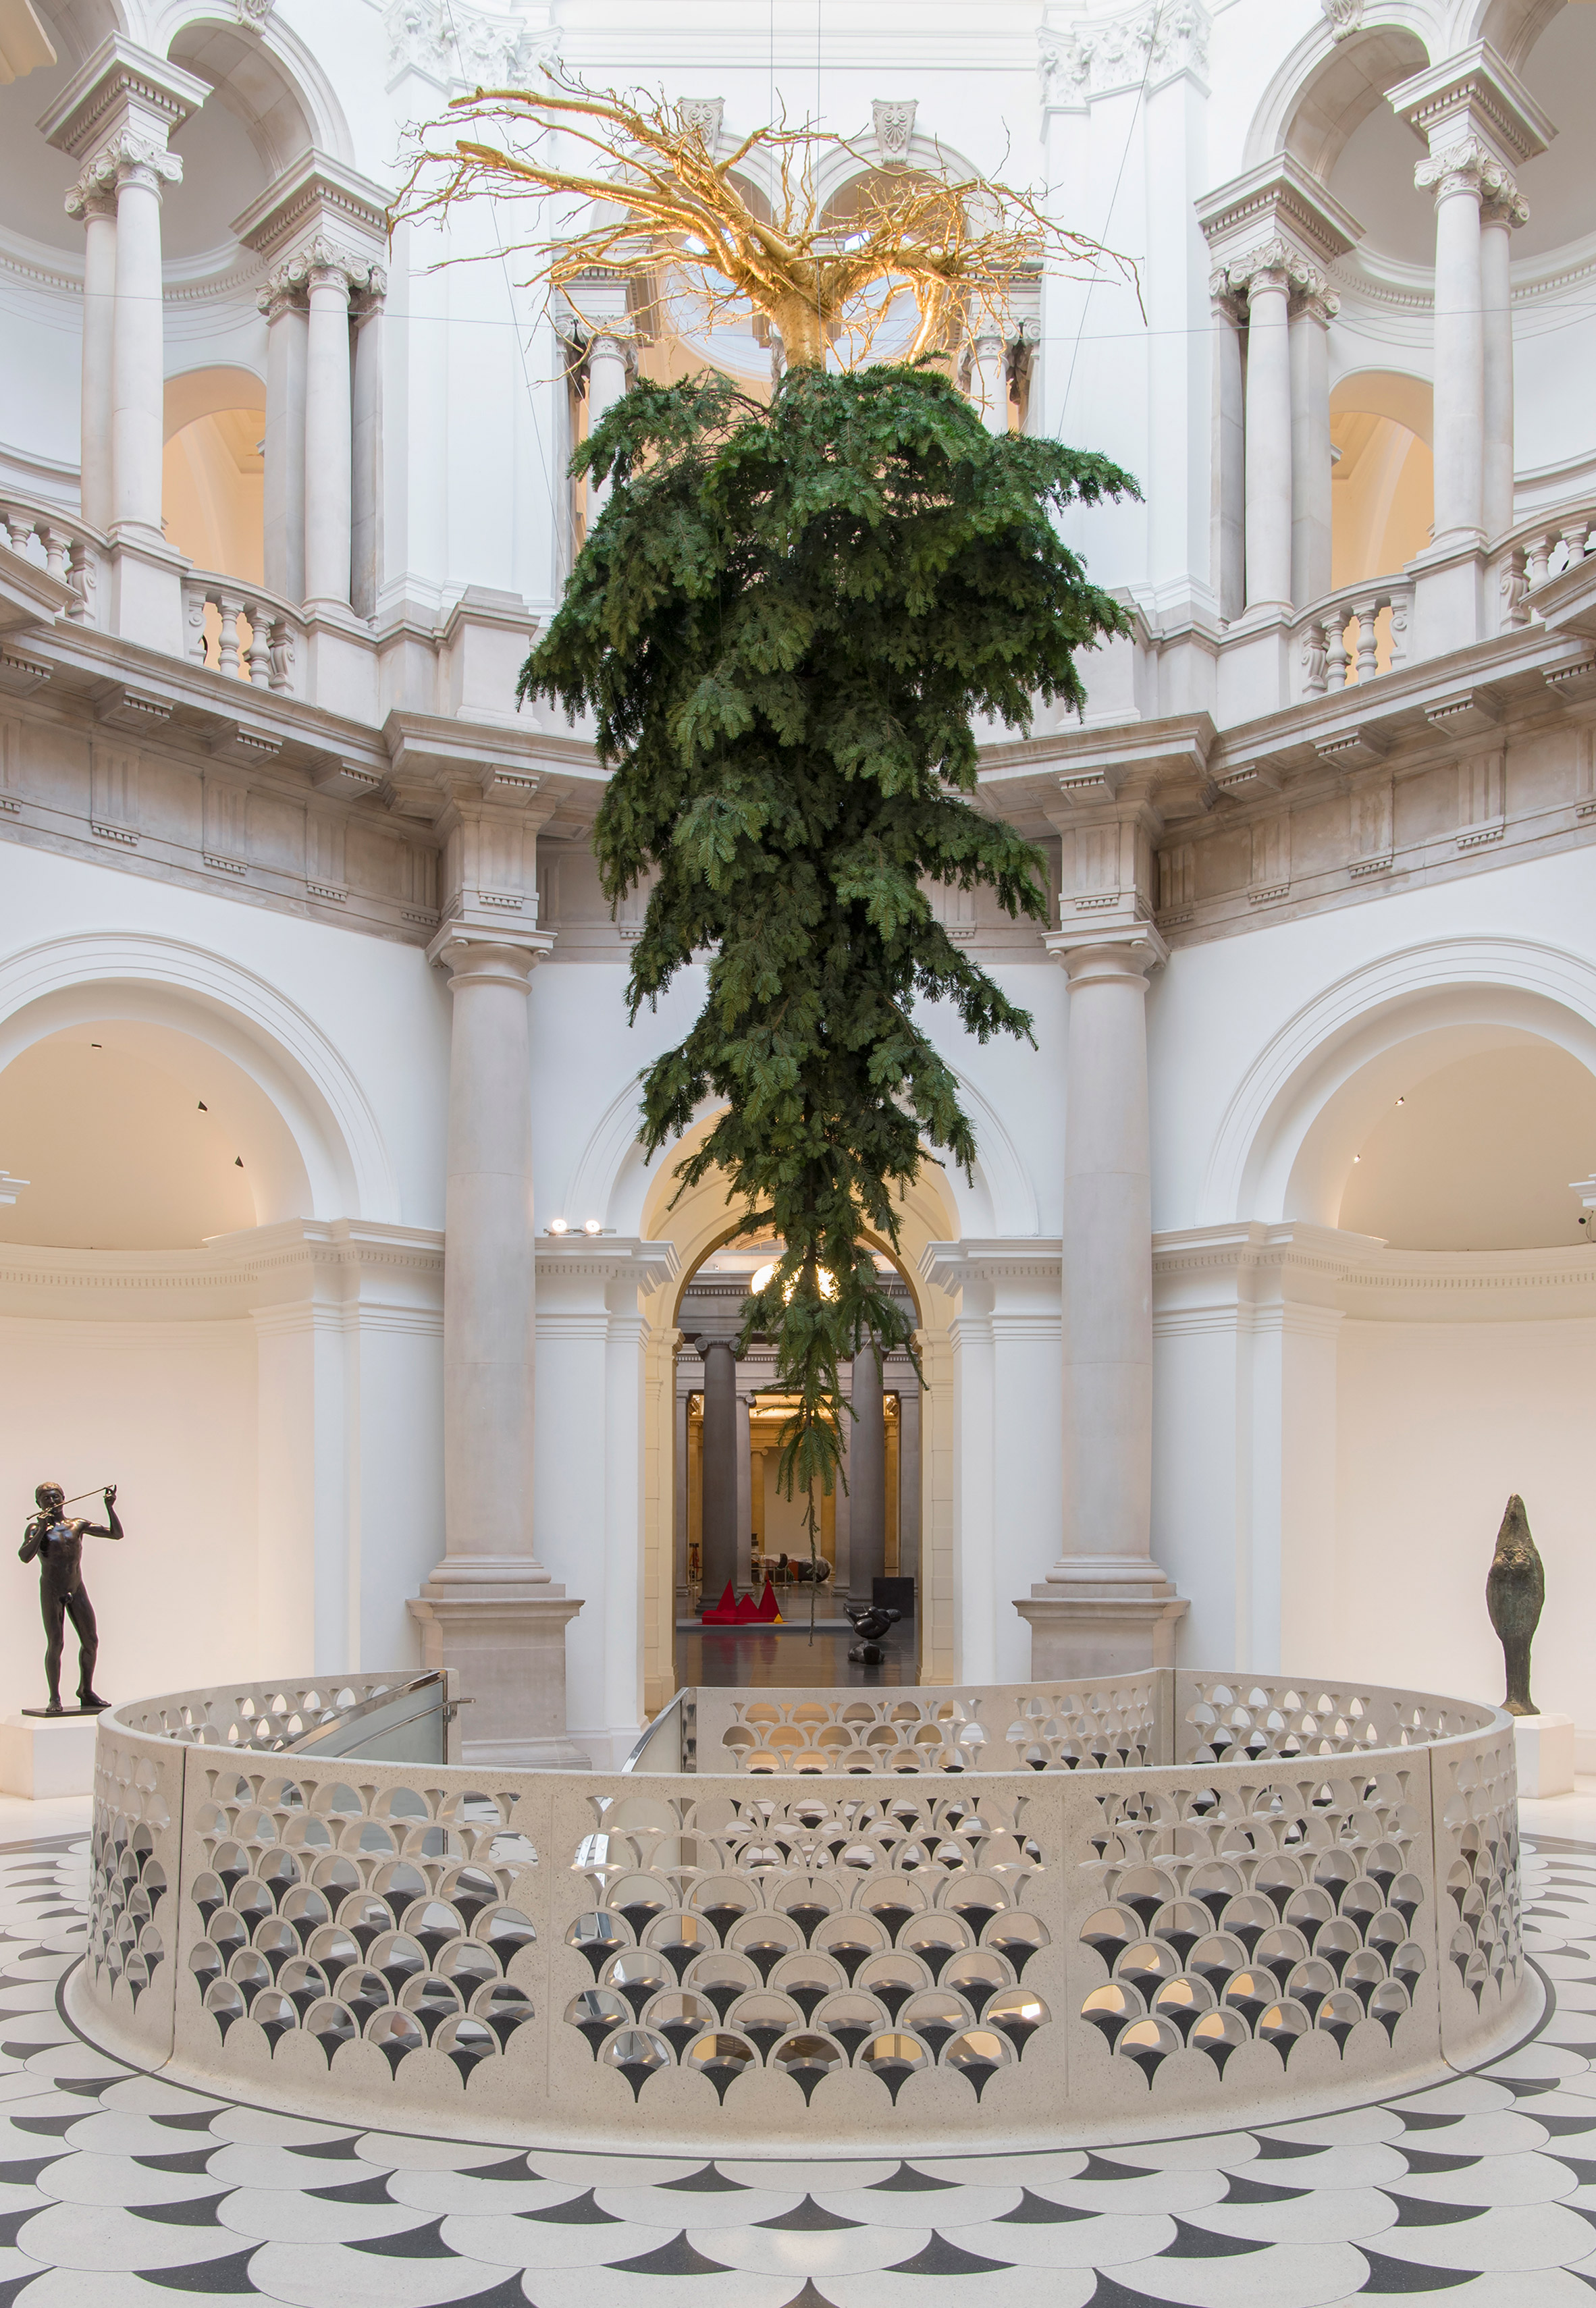 Upside Down Christmas Tree Ceiling.Upside Down Christmas Tree Suspended From Tate Britain Ceiling